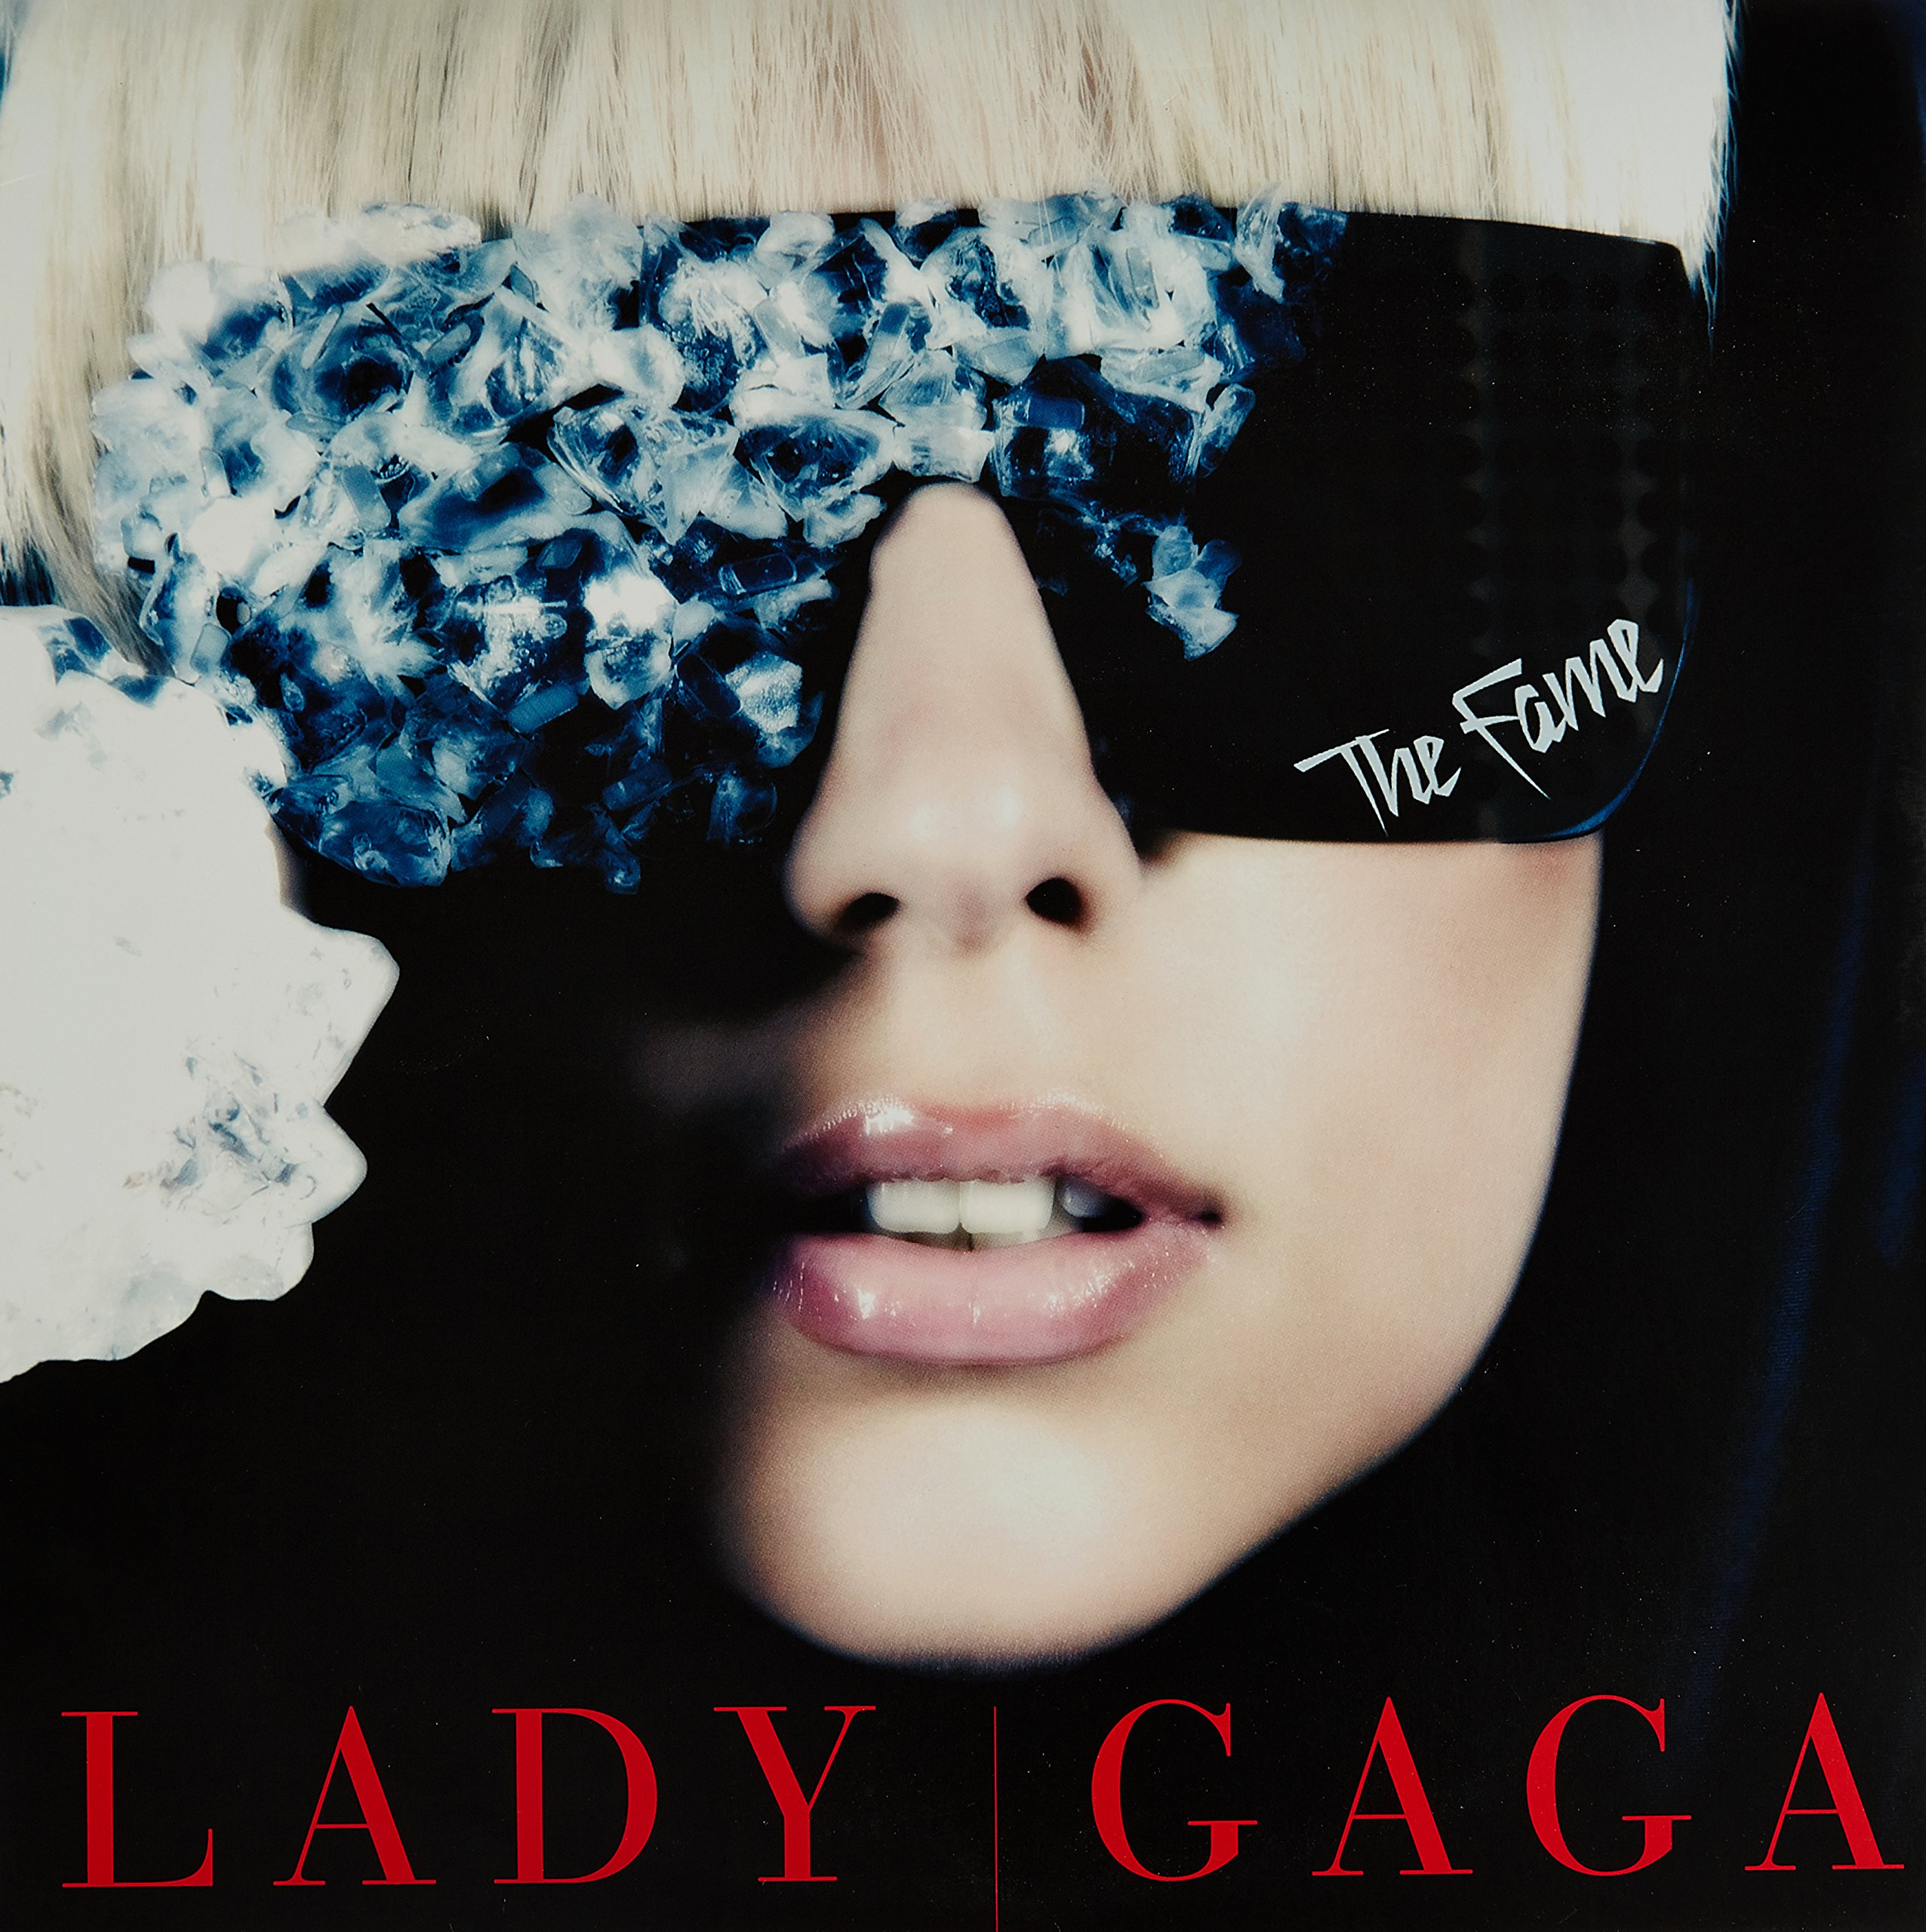 The Fame [Vinyl] by Interscope